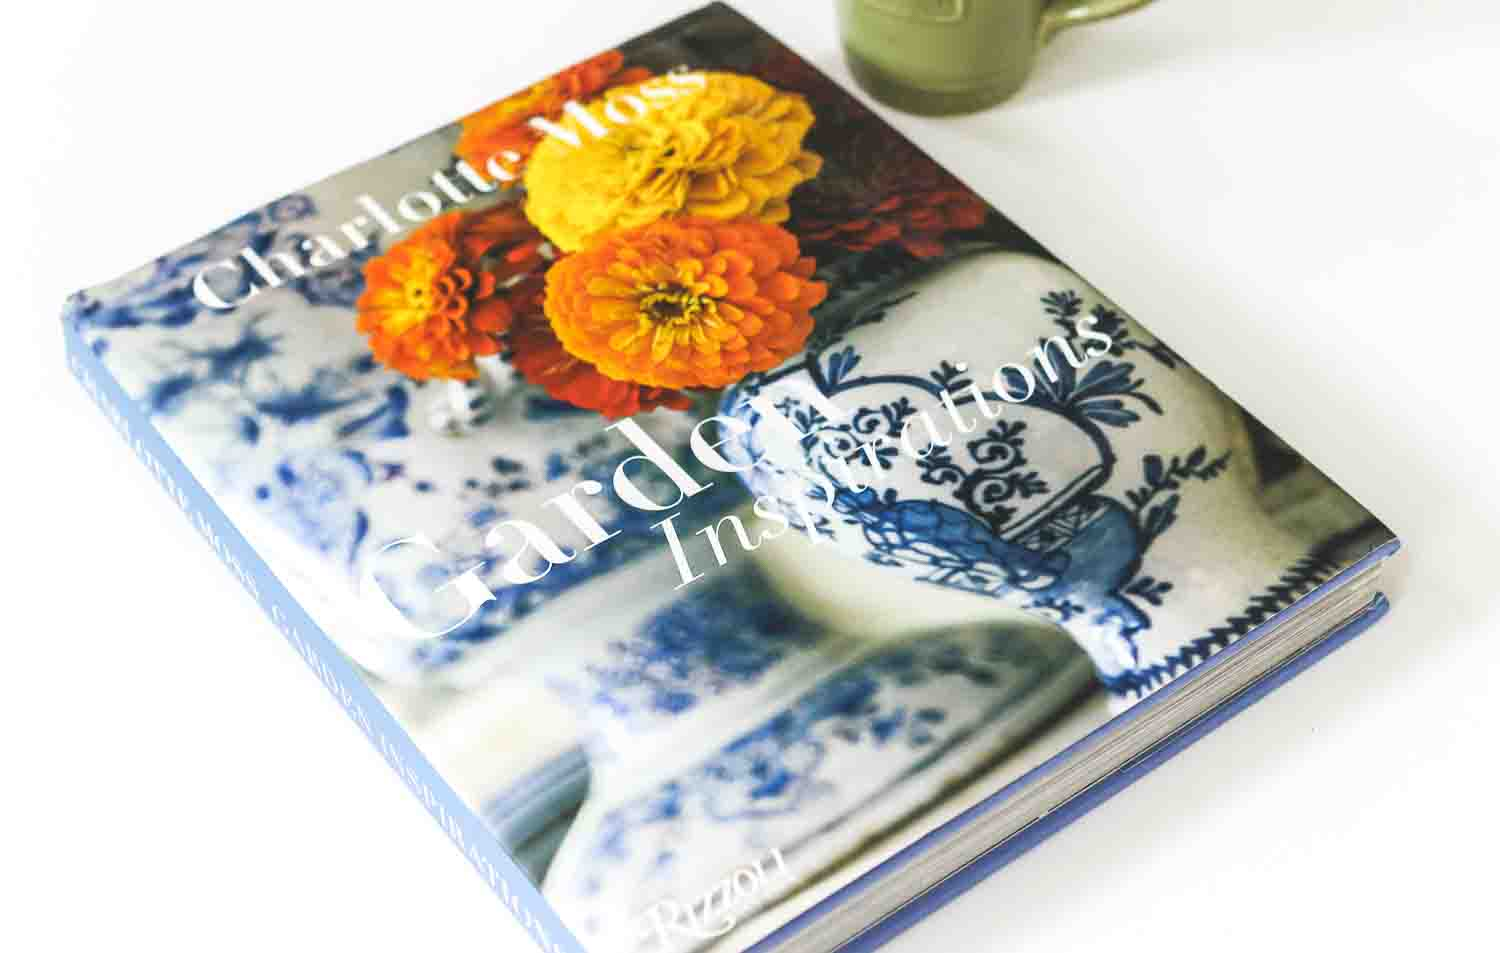 this month's book – garden inspirations